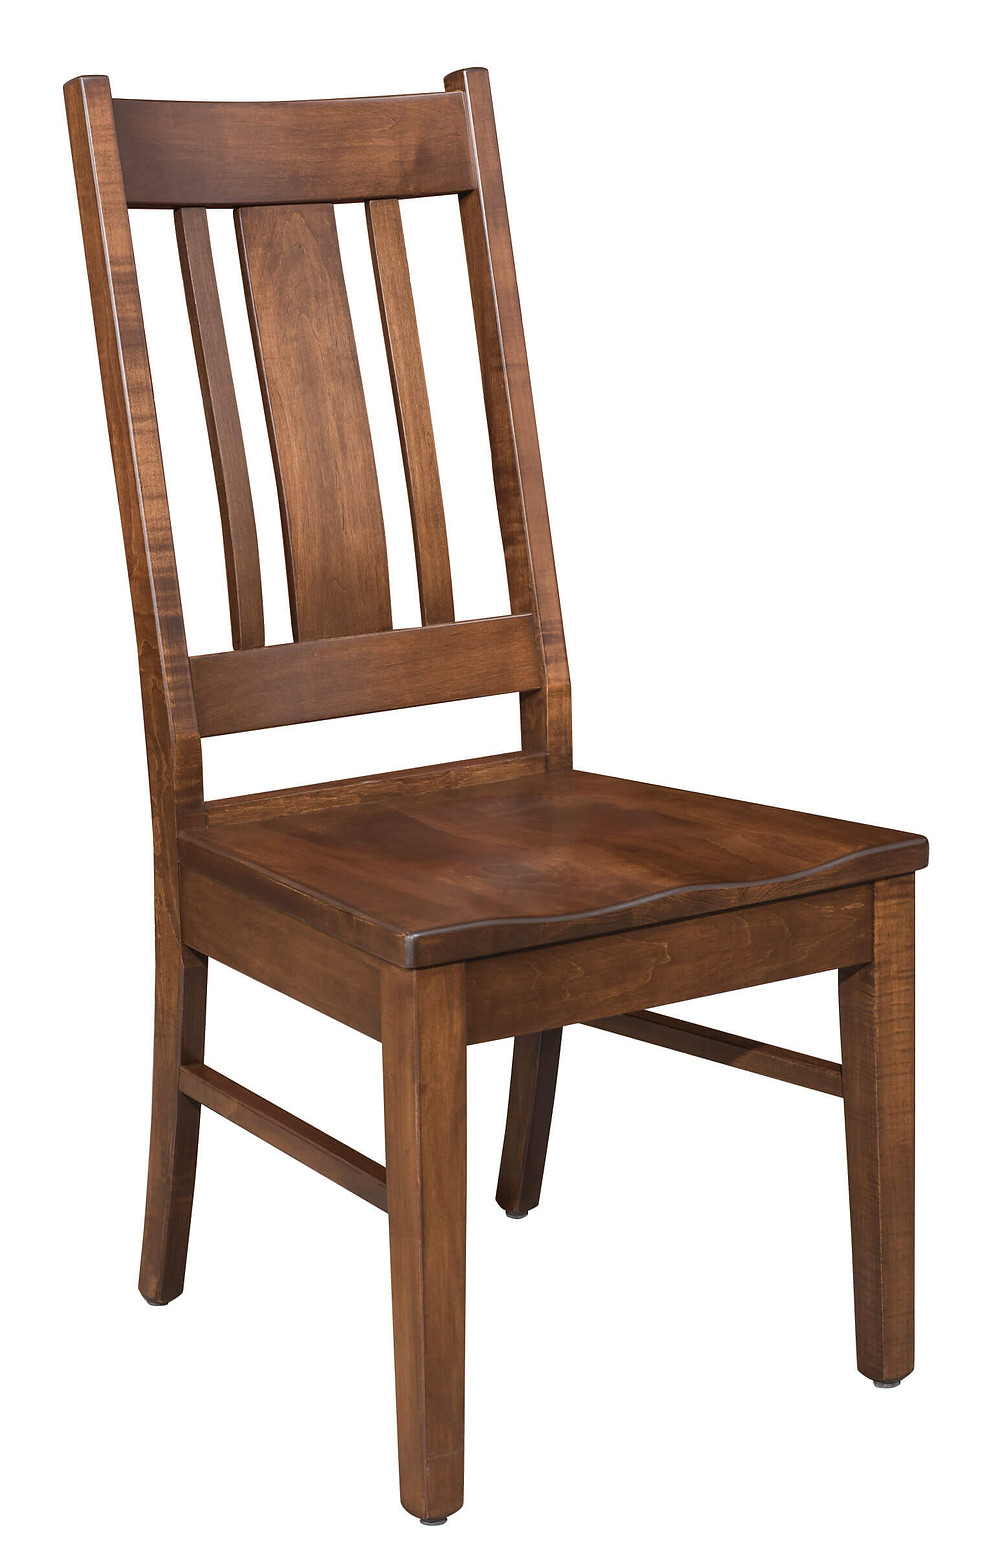 The Mason Side Chair is shown in solid brown maple with coffee stain and is available as an arm chair or a side chair and with wooden seats or padded seats upholstered seats solid hardwood built to order made in the usa amish furniture pittsburgh mills